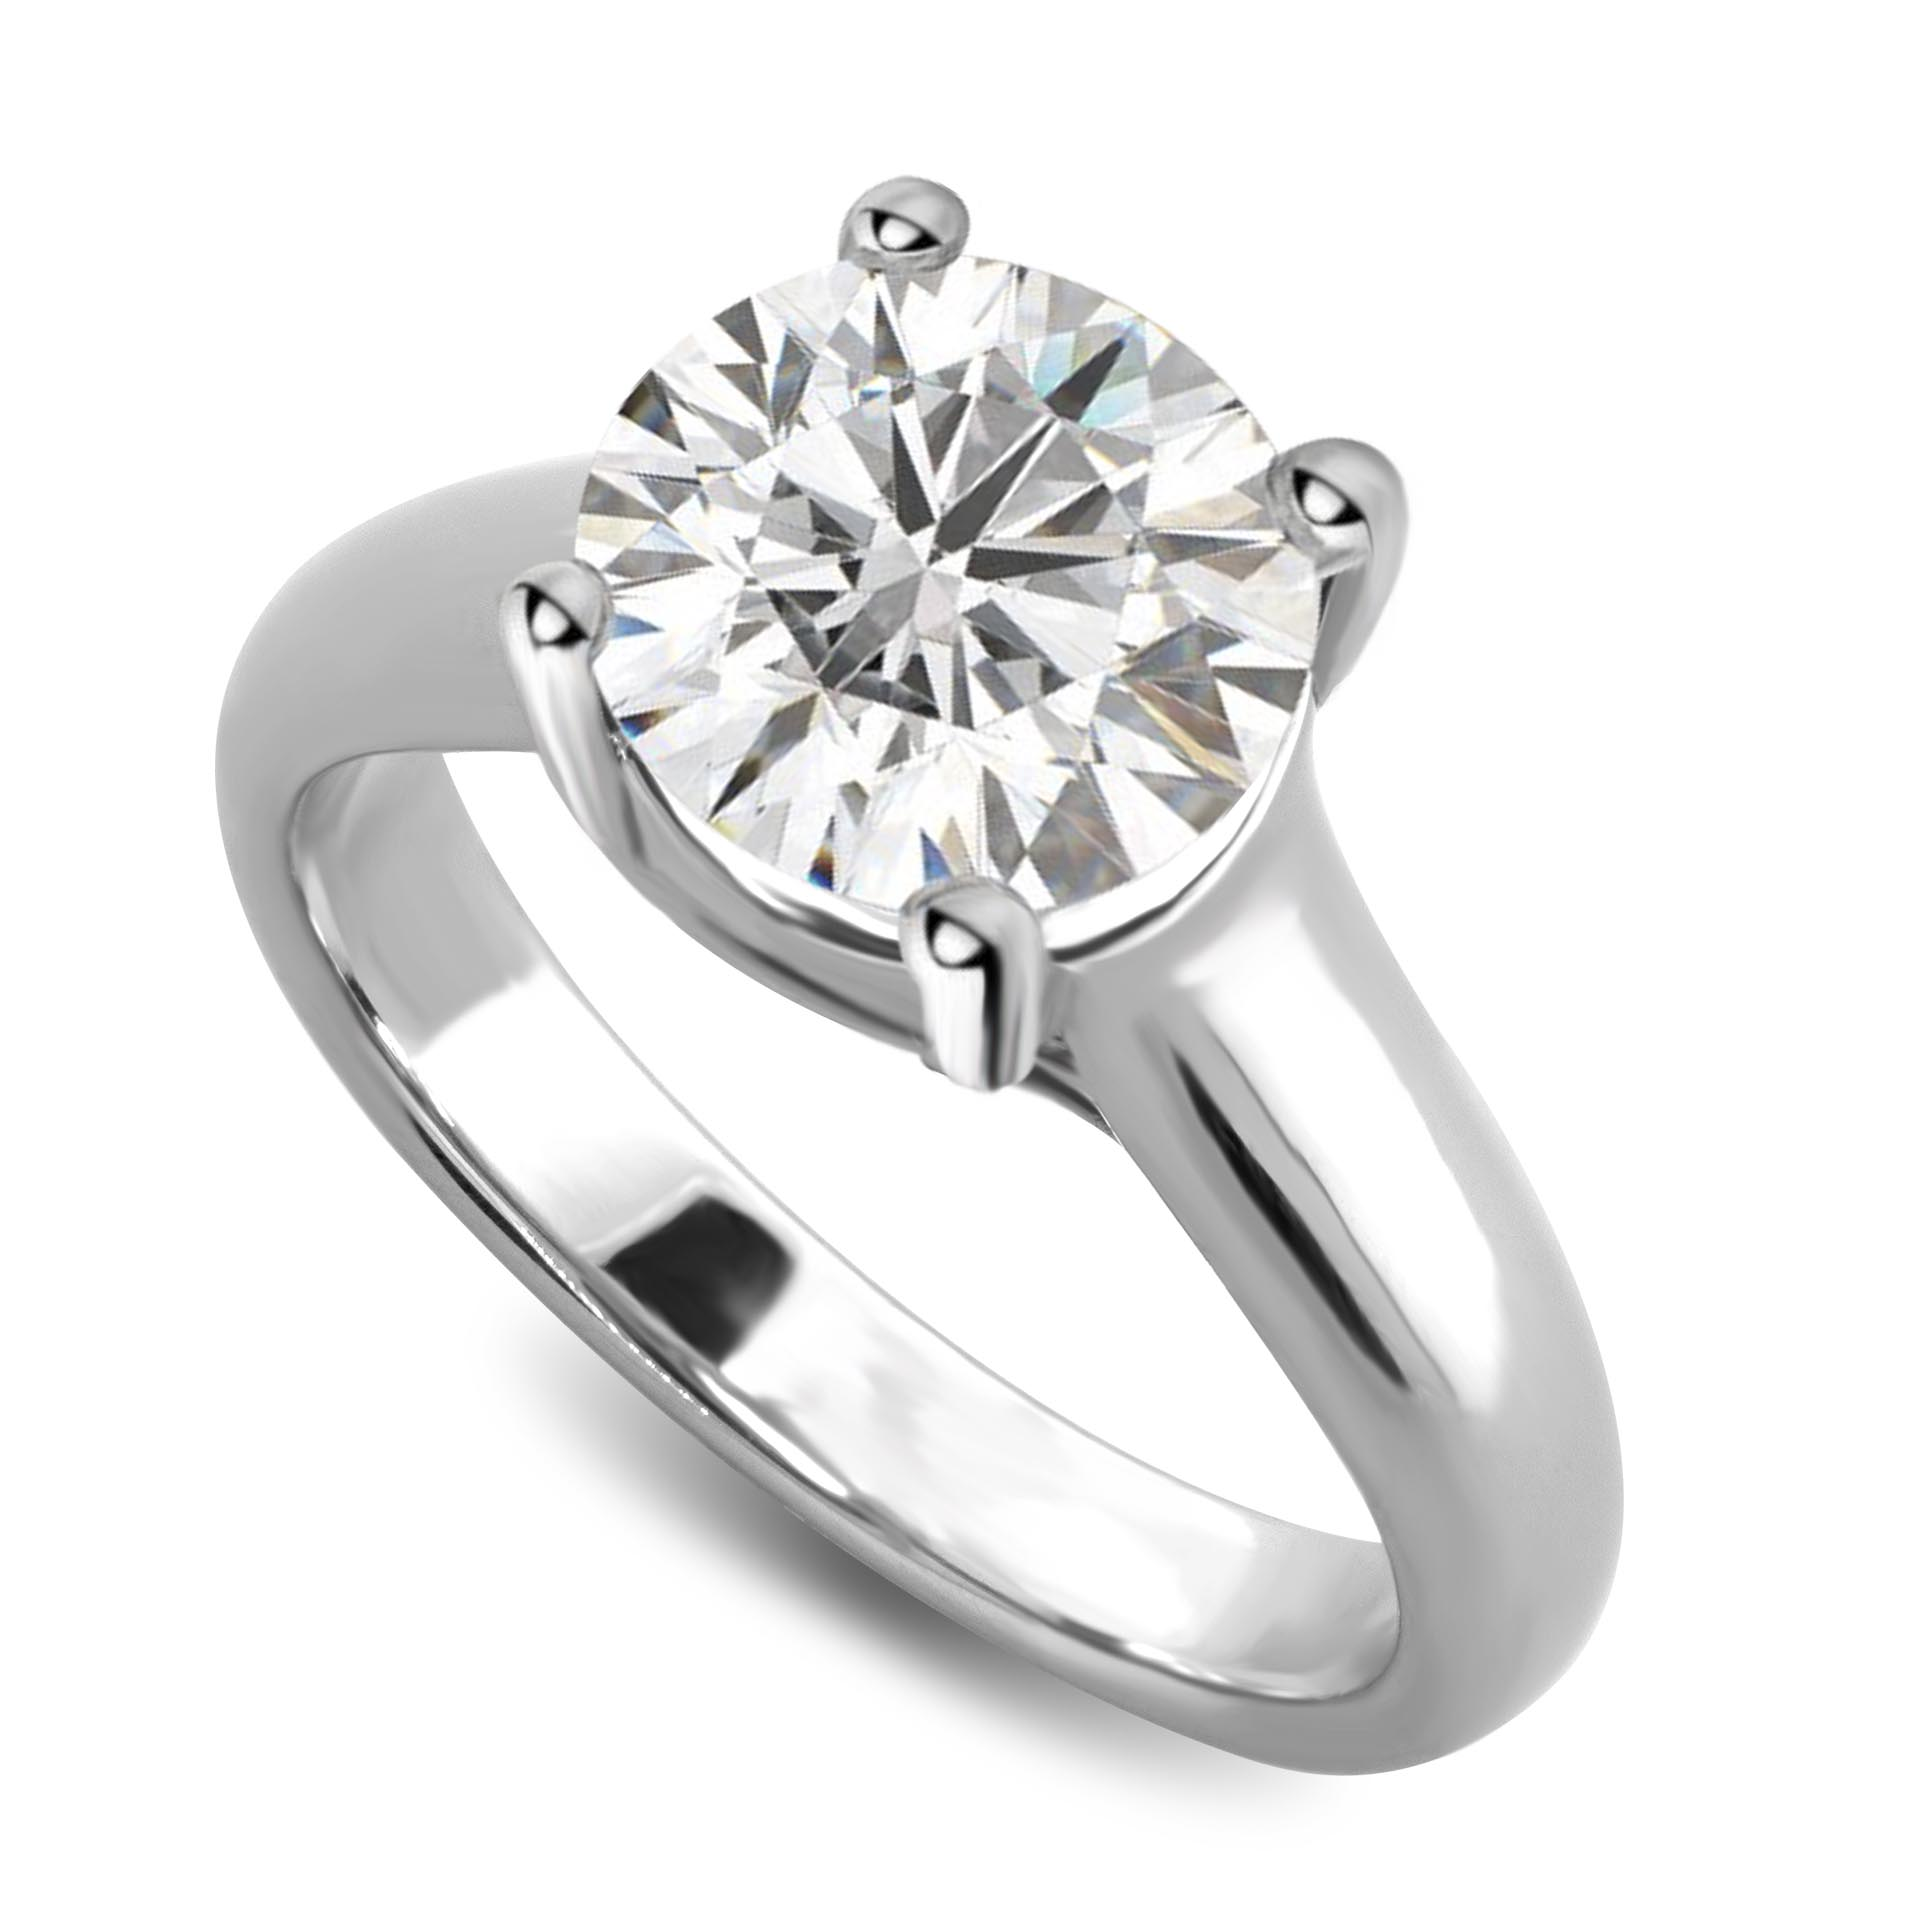 212512147 Lucida Style Solitaire Engagement Ring , Gold or Platinum ...